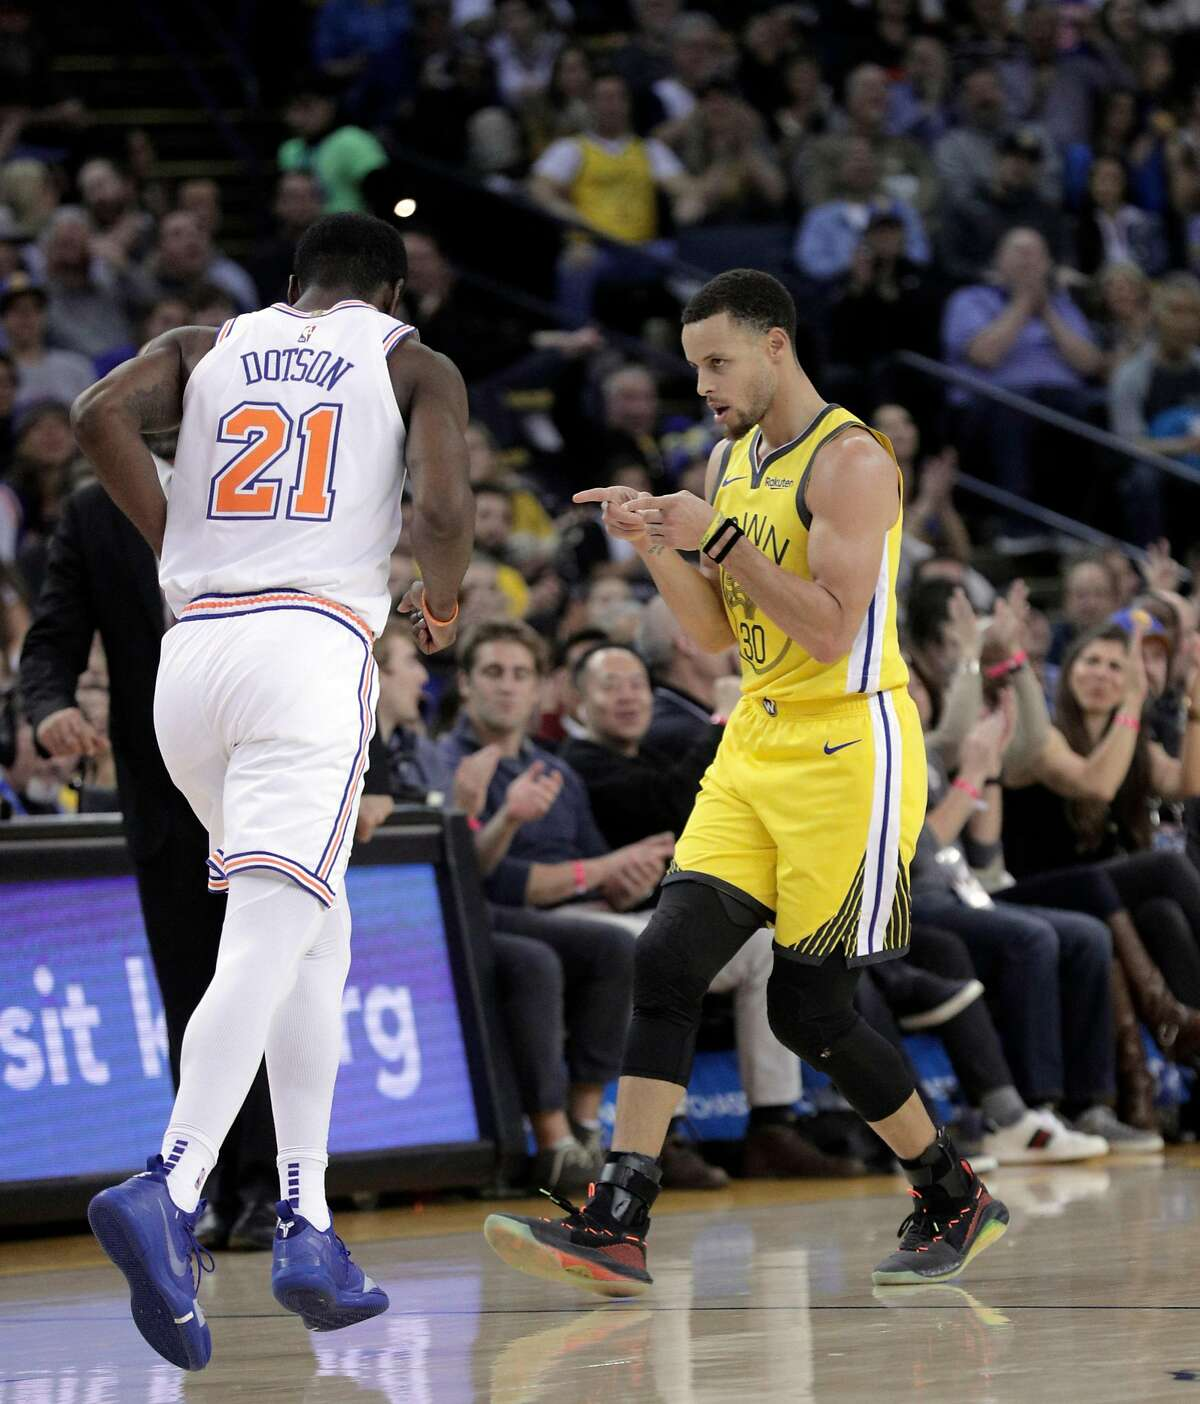 Stephen Curry (30) gestures after hitting a three point shot in the first half as the Golden State Warriors played the New York Knicks at Oracle Arena in Oakland, Calif., on Tuesday, January 8, 2019.